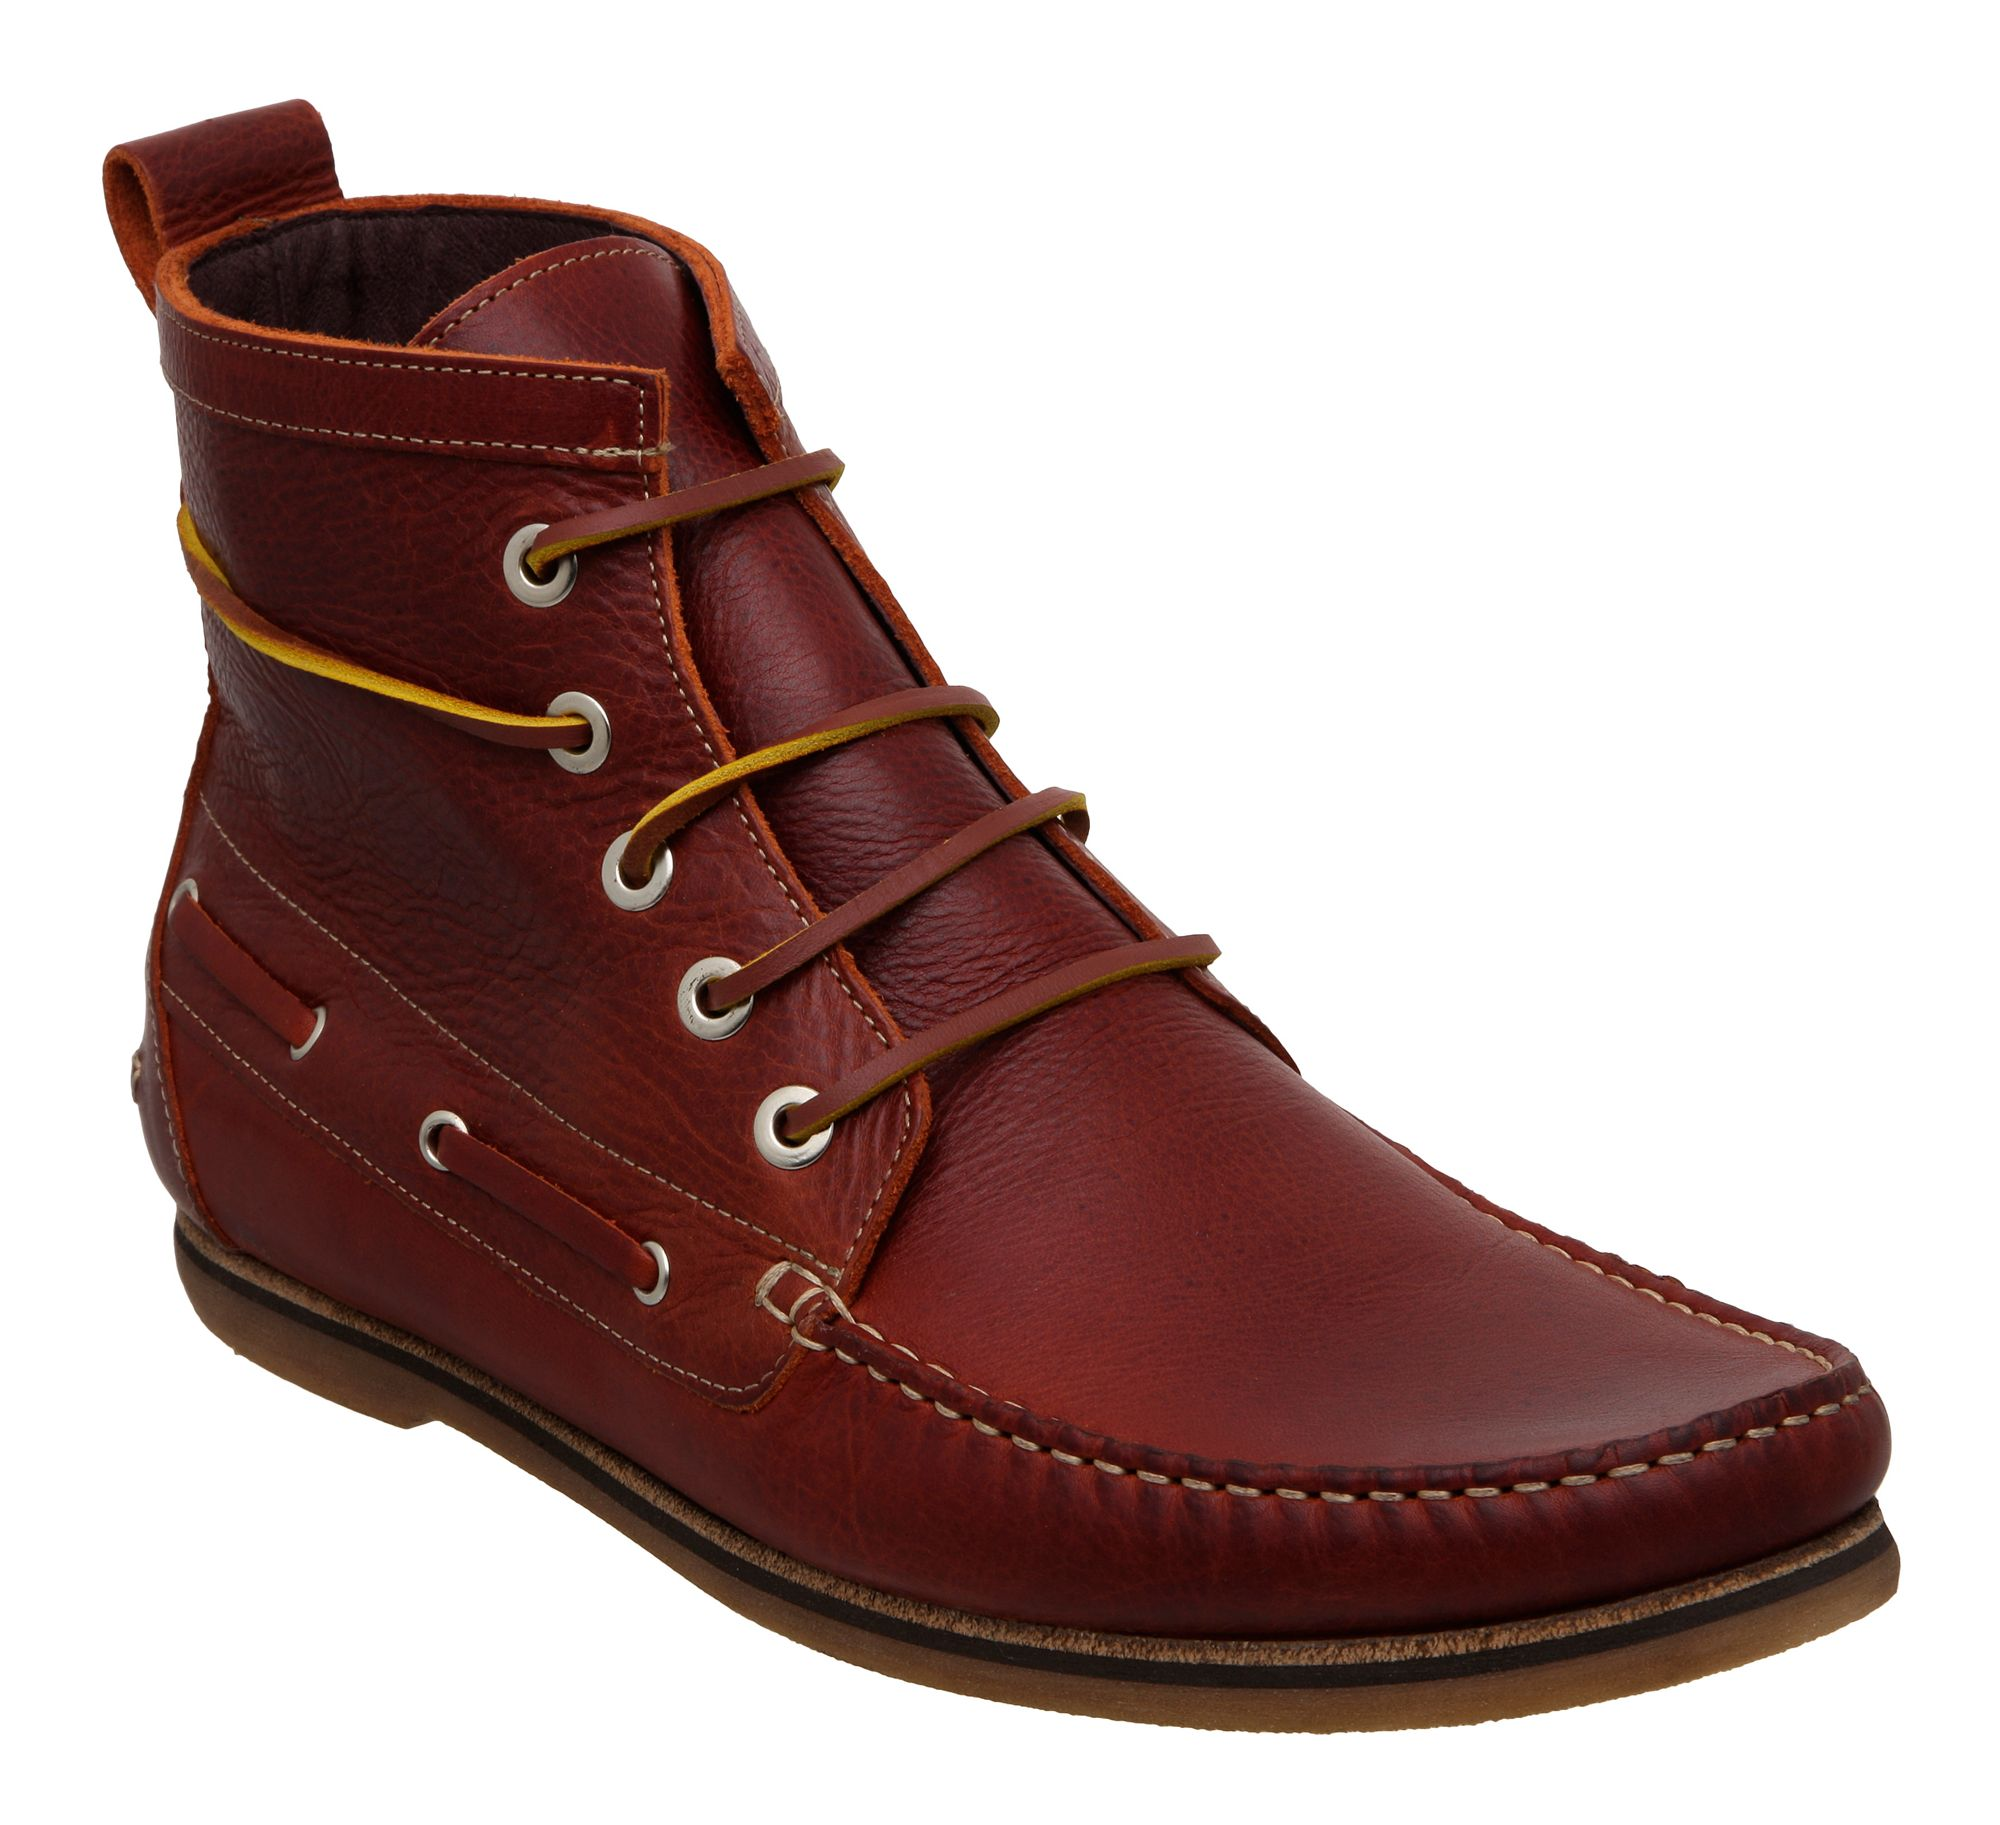 Hudson Mesquite Casual Boots In Brown For Men Burgundy